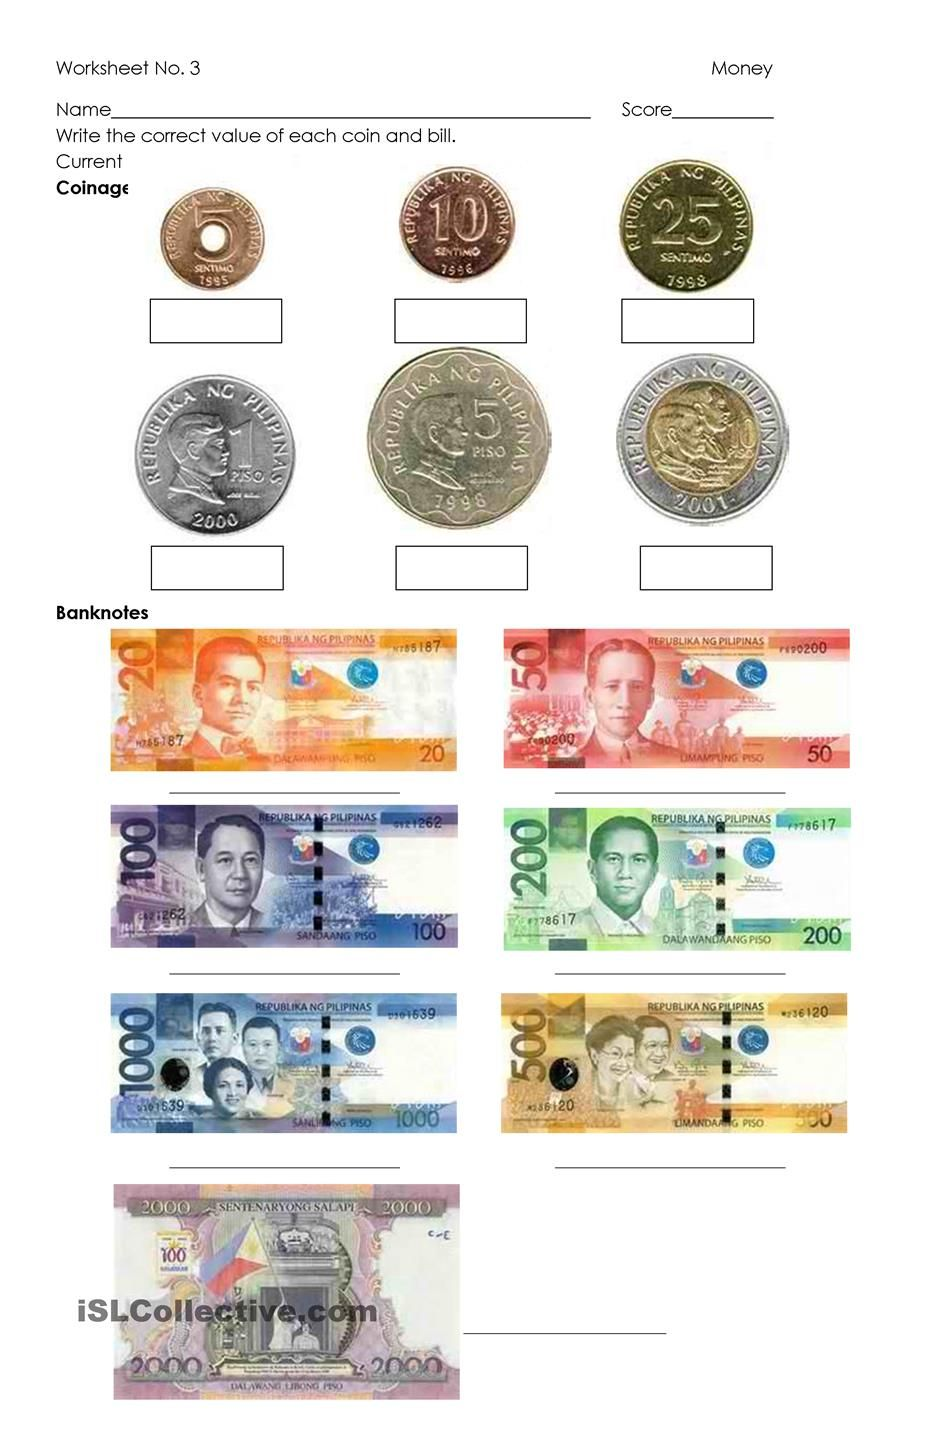 hight resolution of Money - Philippine Coins and Bills   Money worksheets